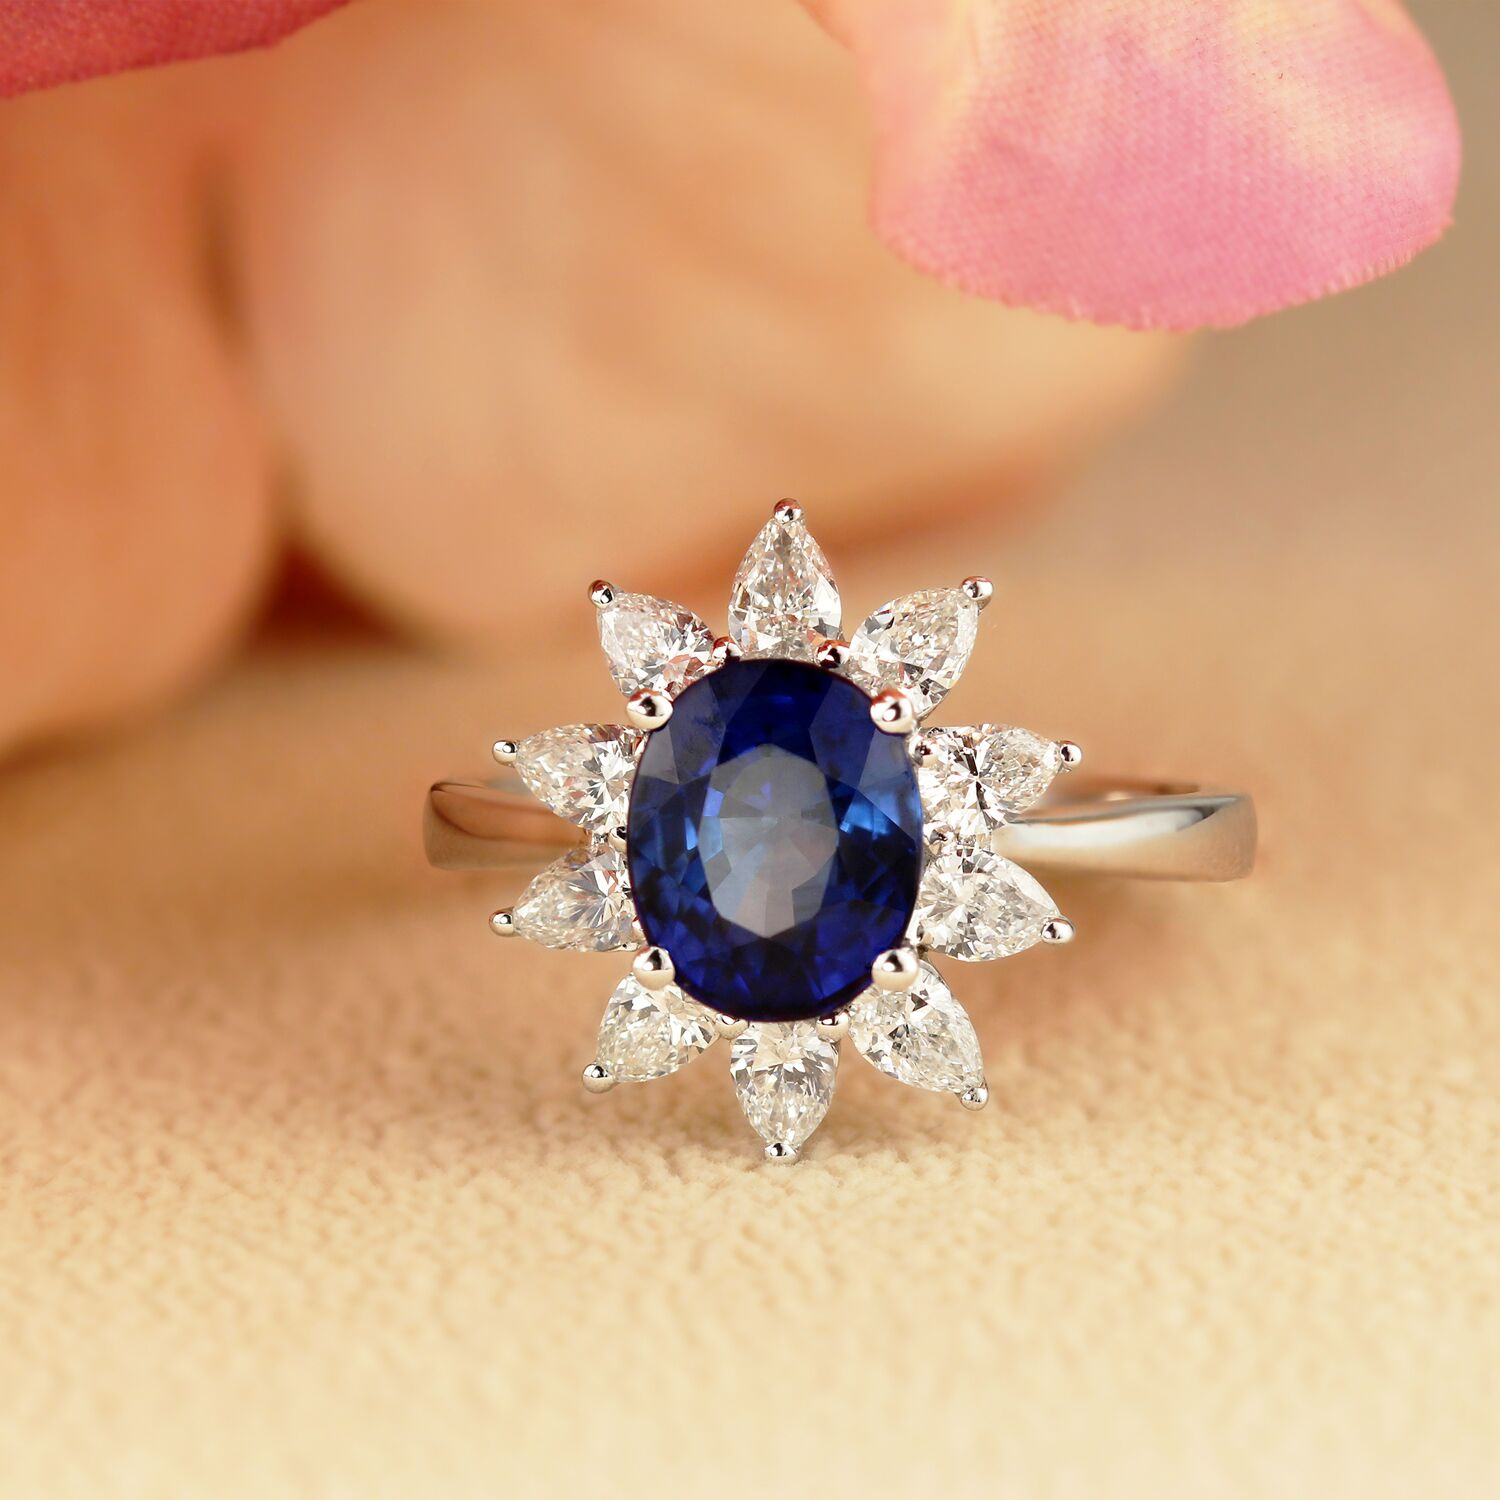 Meaning of Your Gemstone Engagement Rings